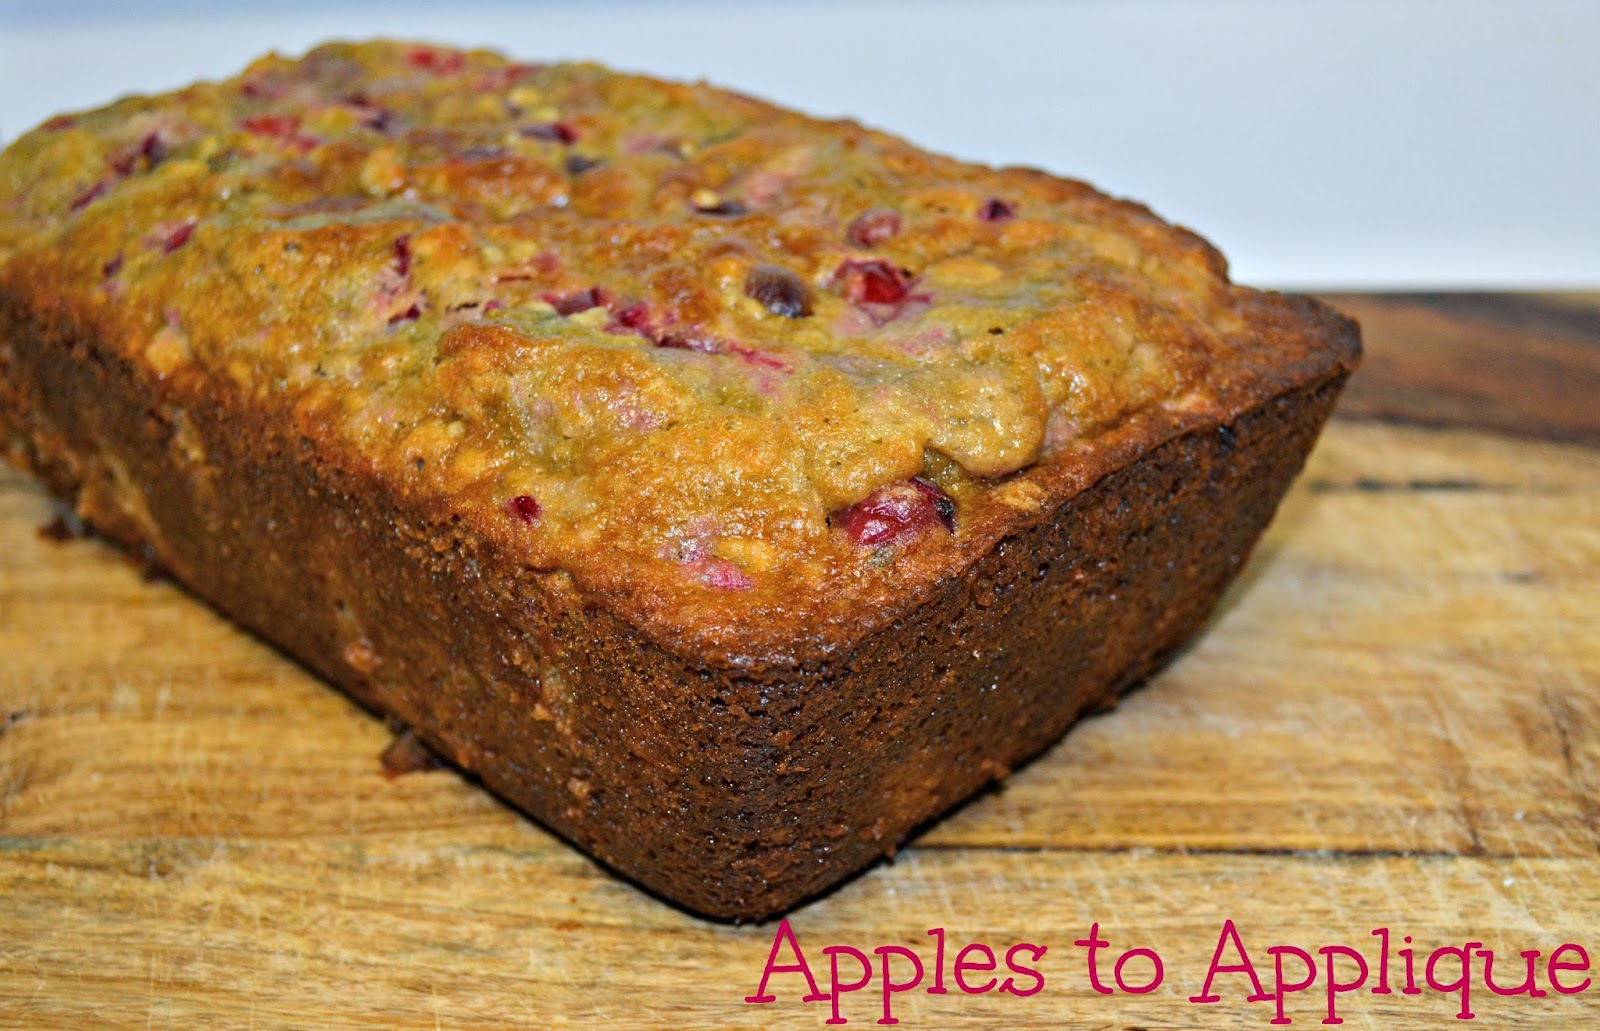 Apples to Applique: Cranberry Orange Bread with Oats and Pecans